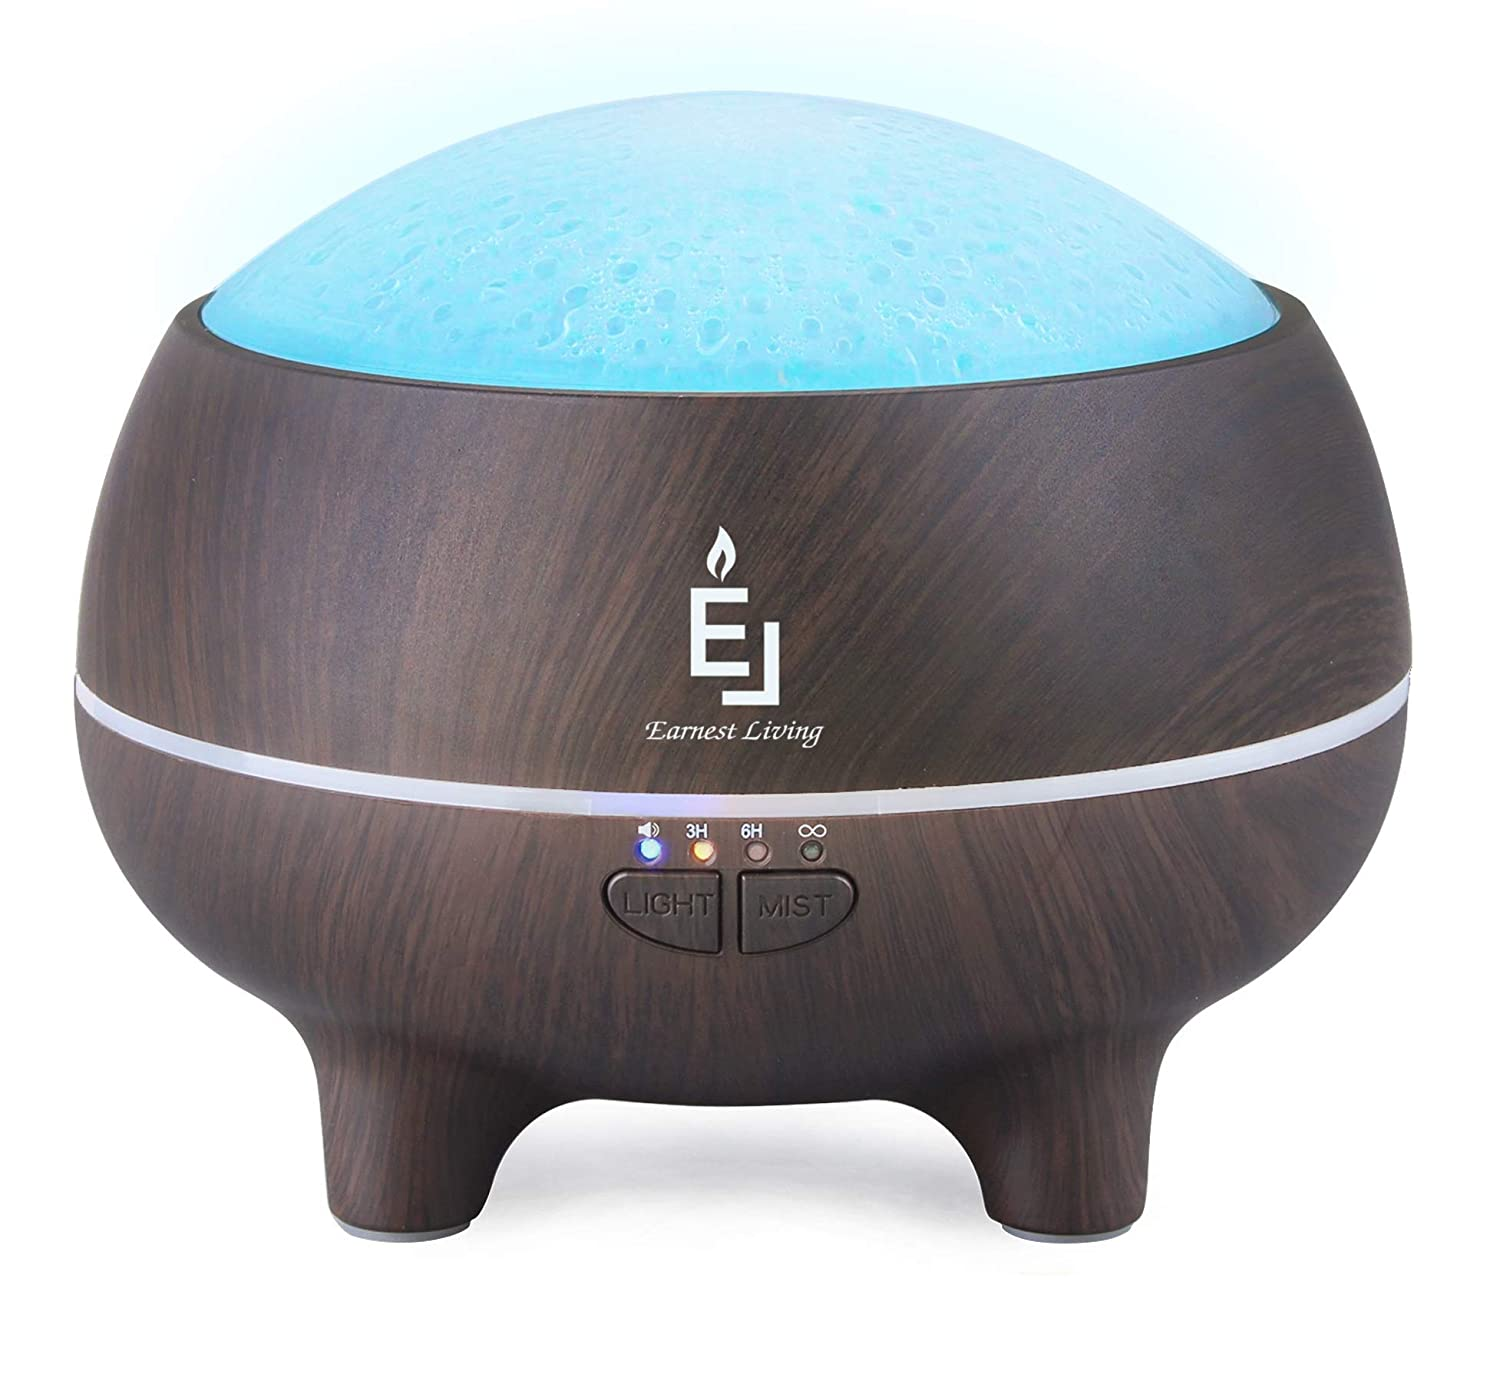 Earnest Living Essential Oil Diffusers Bluetooth Speaker Diffuser with Timer & Water End Auto Shut-off – Cool Mist Humidifier Ultrasonic Defusers with Intermittent Mist Settings for Large Rooms Office